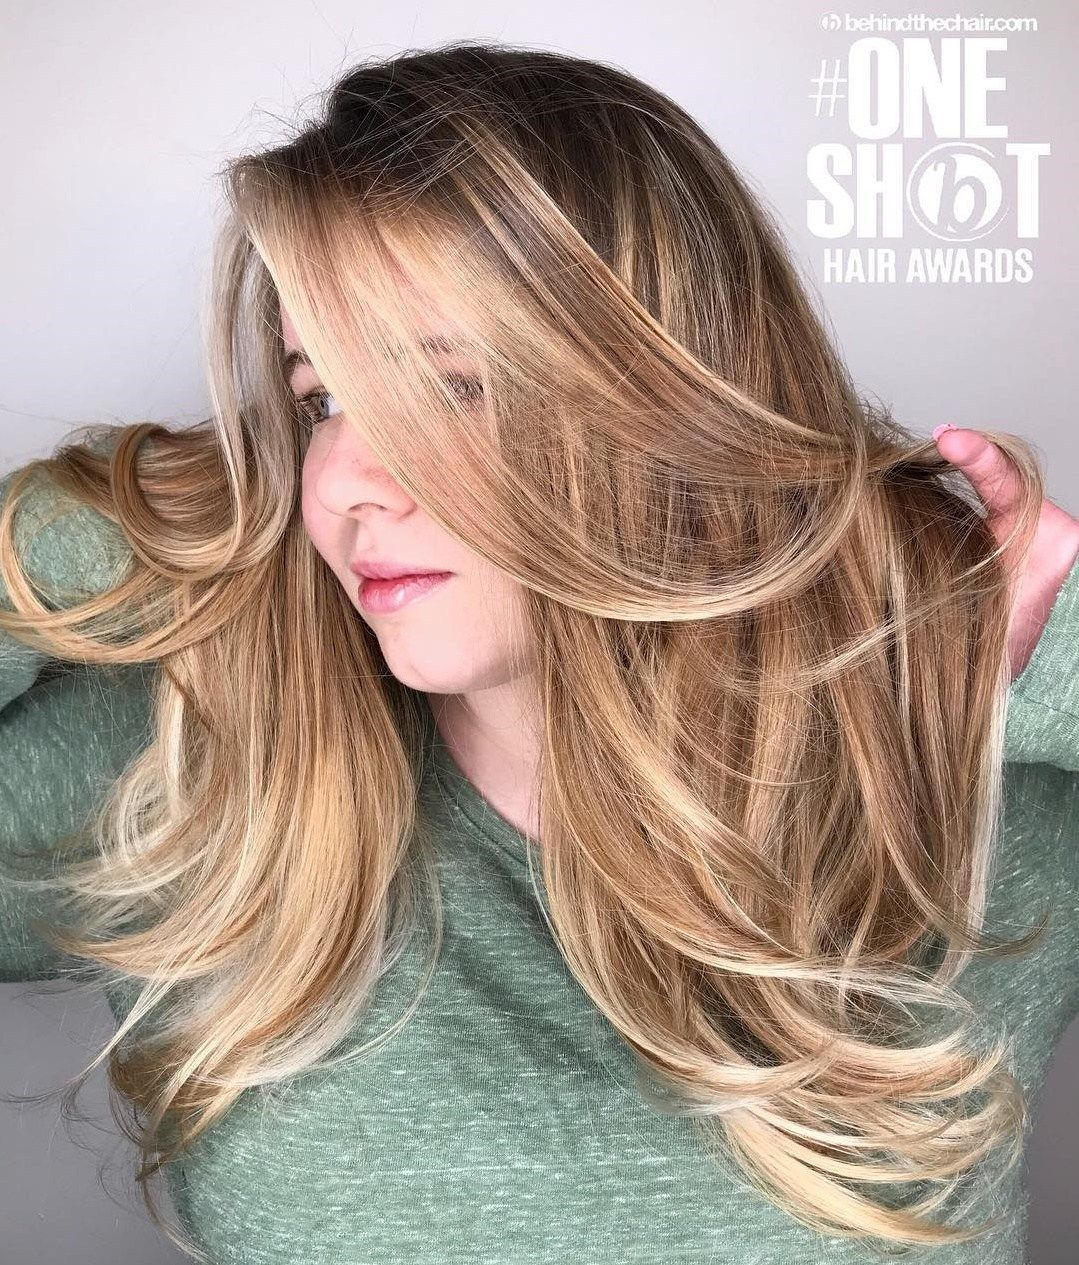 50 Amazing Haircuts For Round Faces Hair Adviser Round Face Haircuts Layered Haircuts Hairstyles For Round Faces